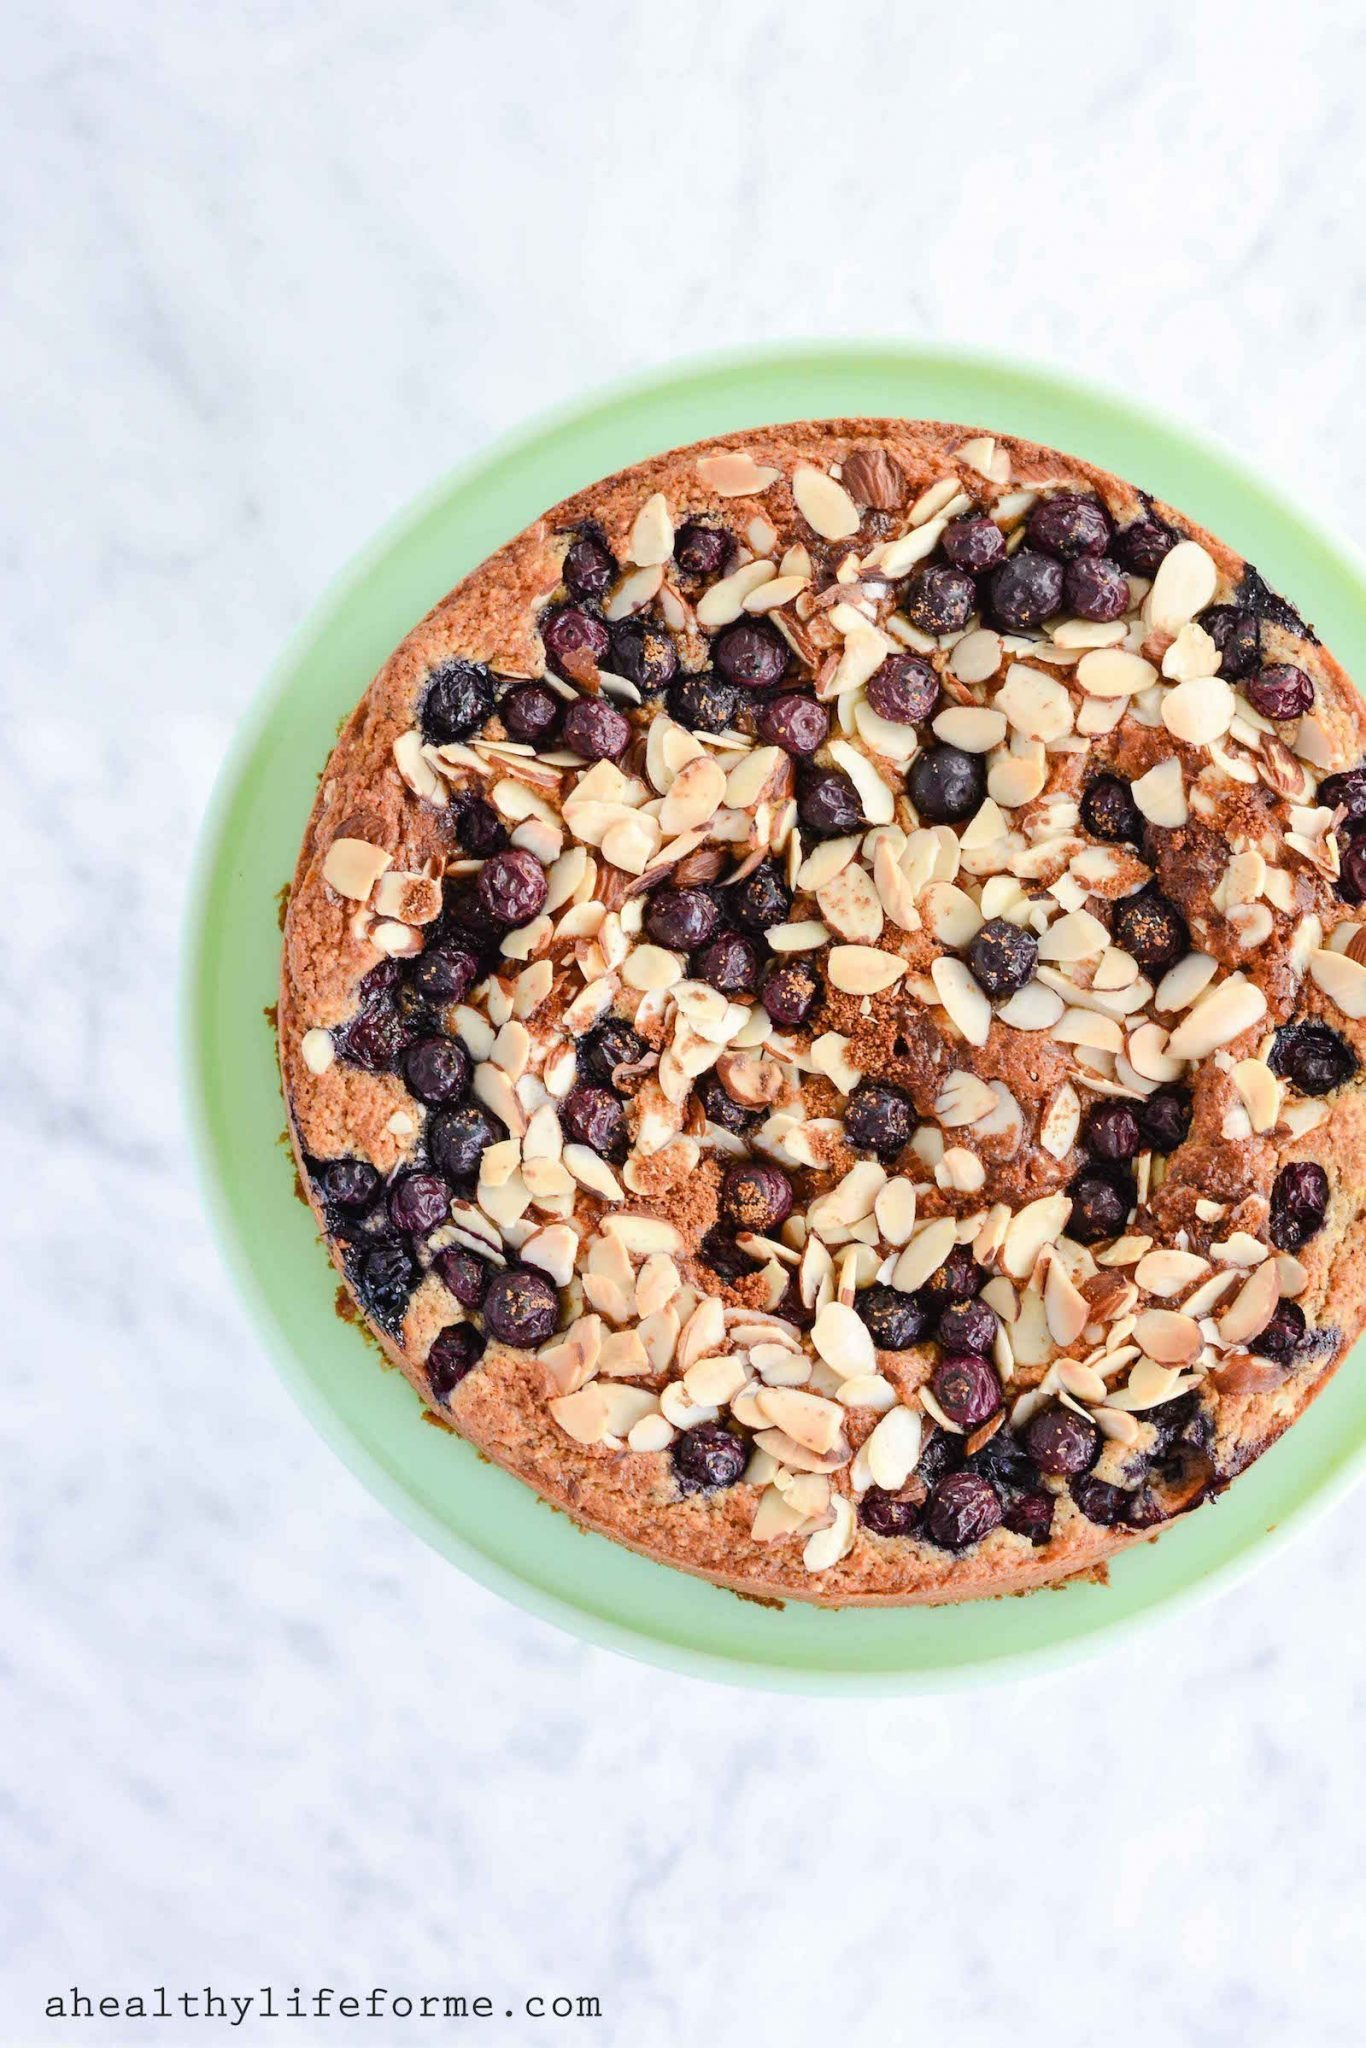 Gluten Free Blueberry Chocolate Cake A Healthy Life For Me